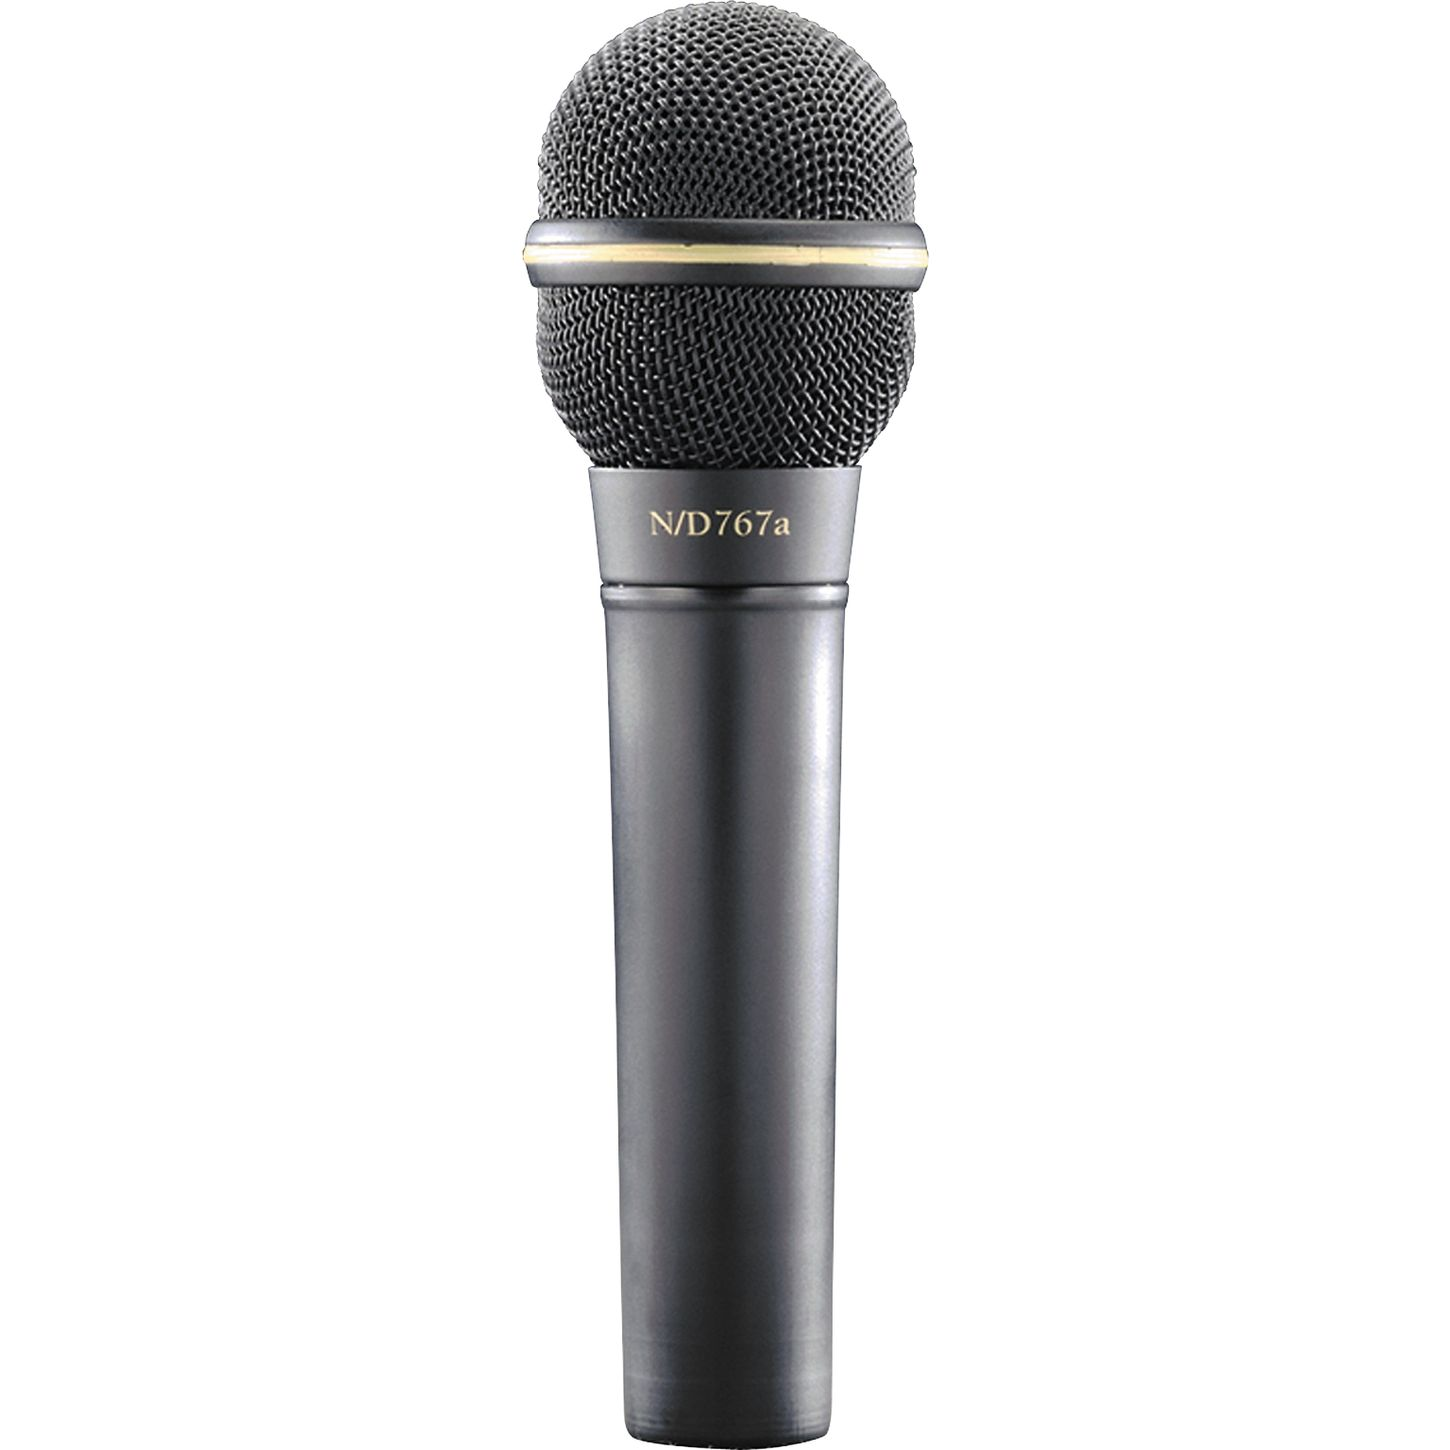 Electro Voice N D767a Dynamic Supercardioid Vocal